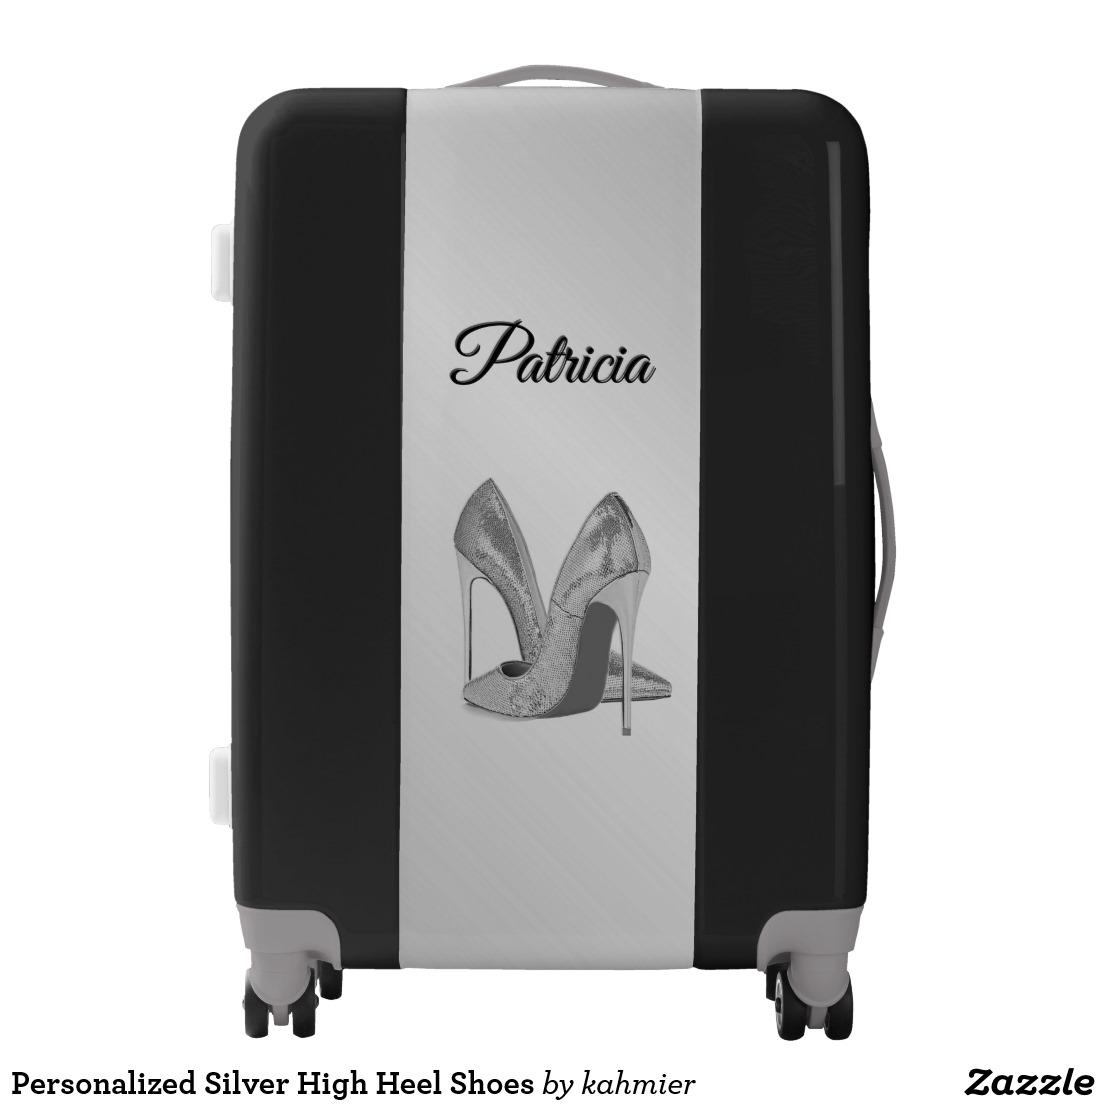 Personalized Silver High Heel Shoes Luggage